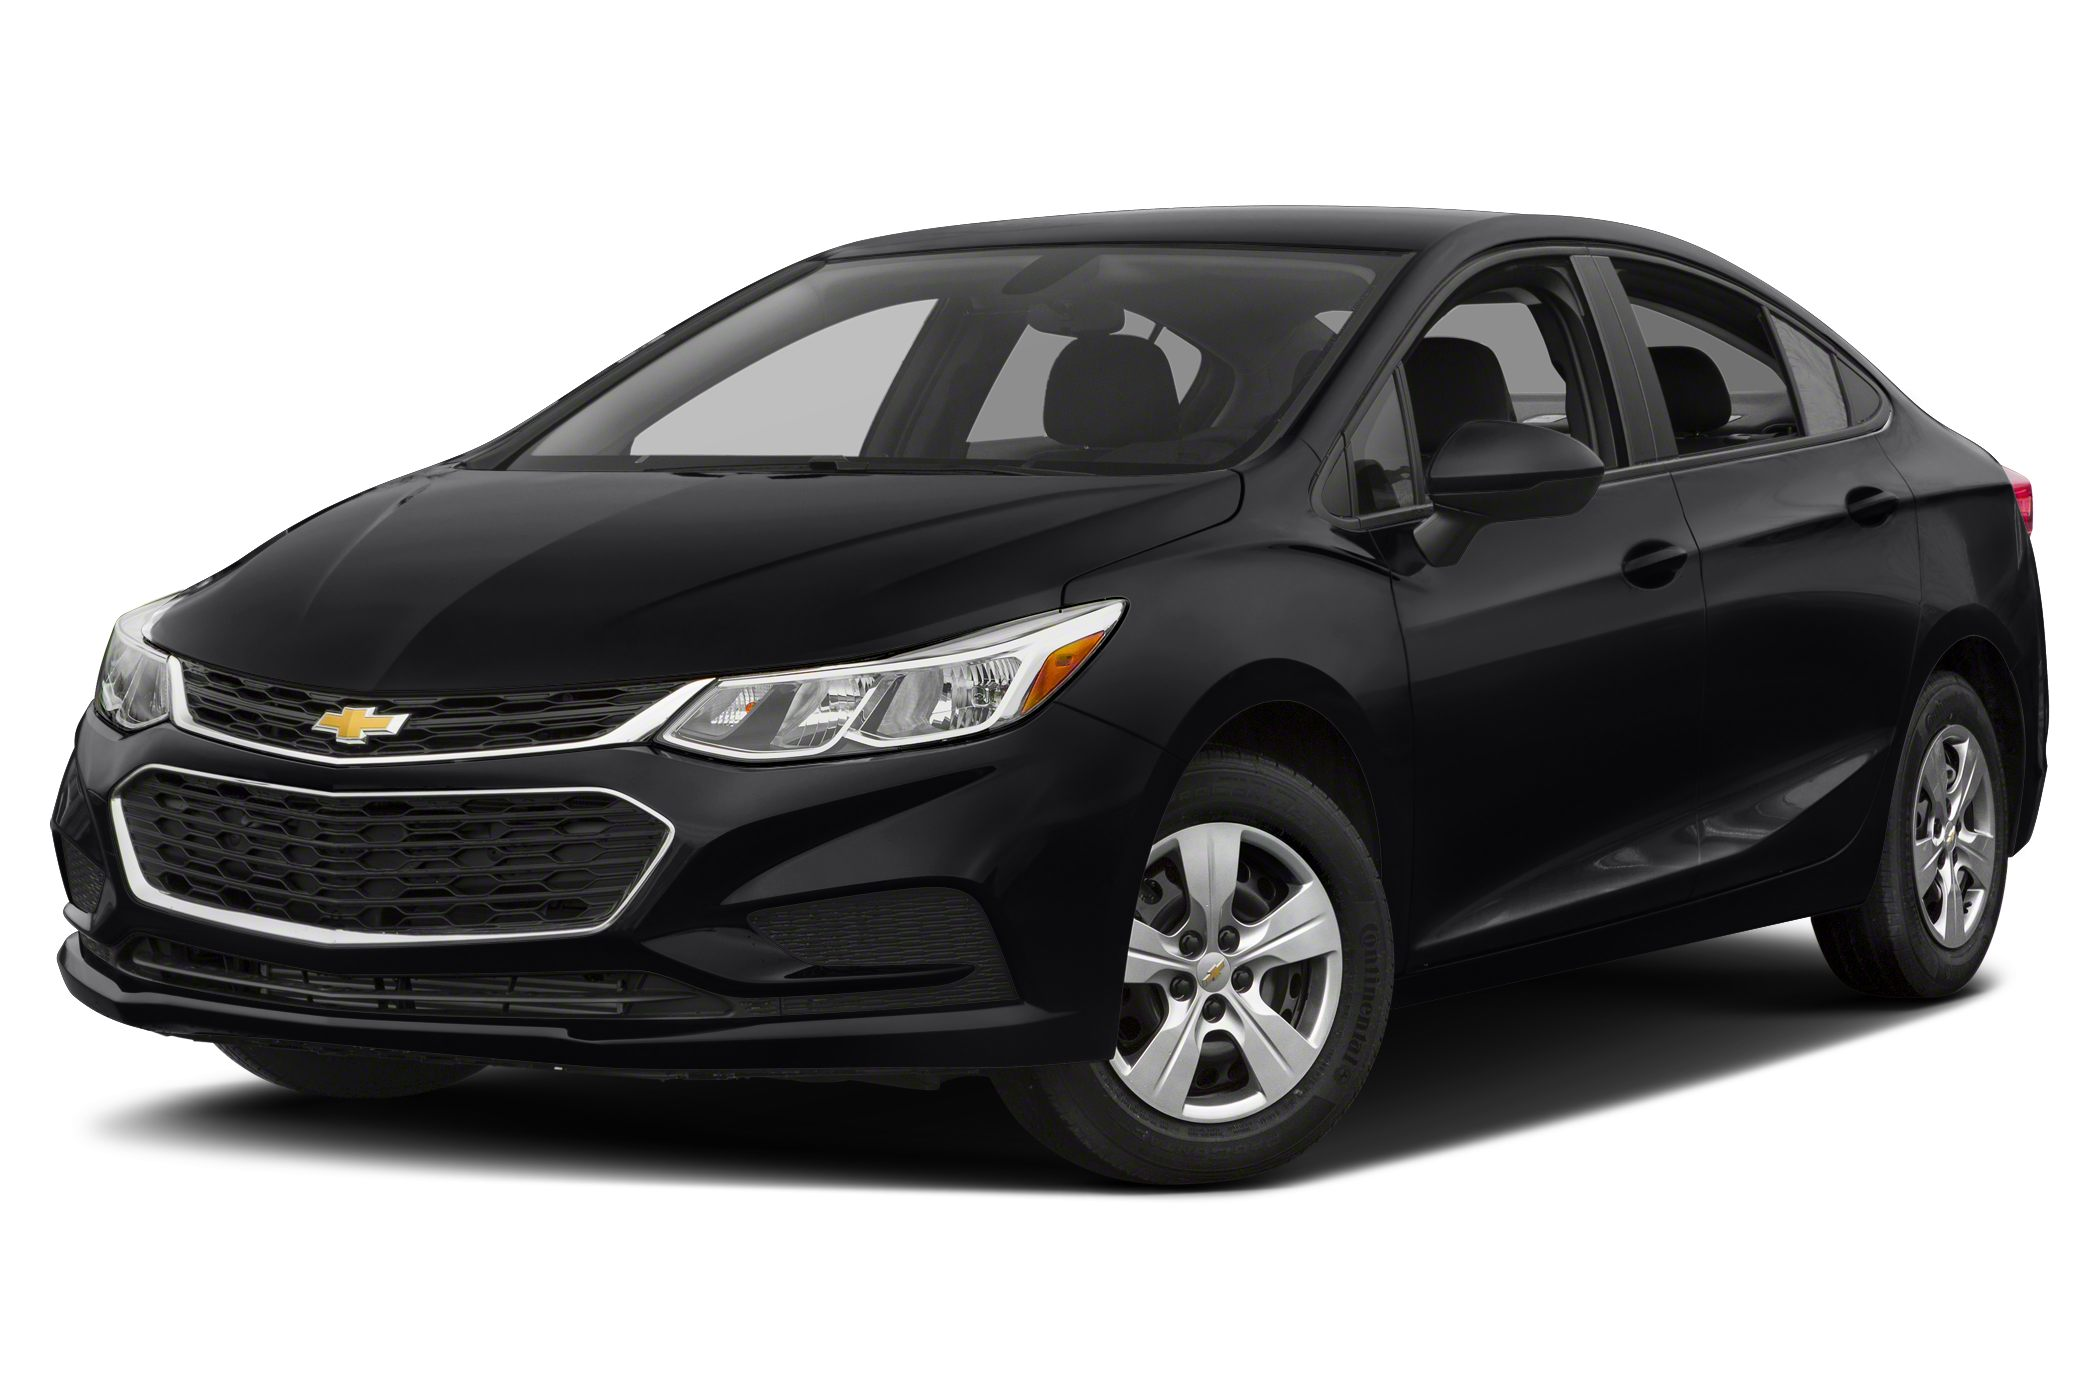 2017 chevy cruze hatchback updated with utility and style autoblog. Black Bedroom Furniture Sets. Home Design Ideas